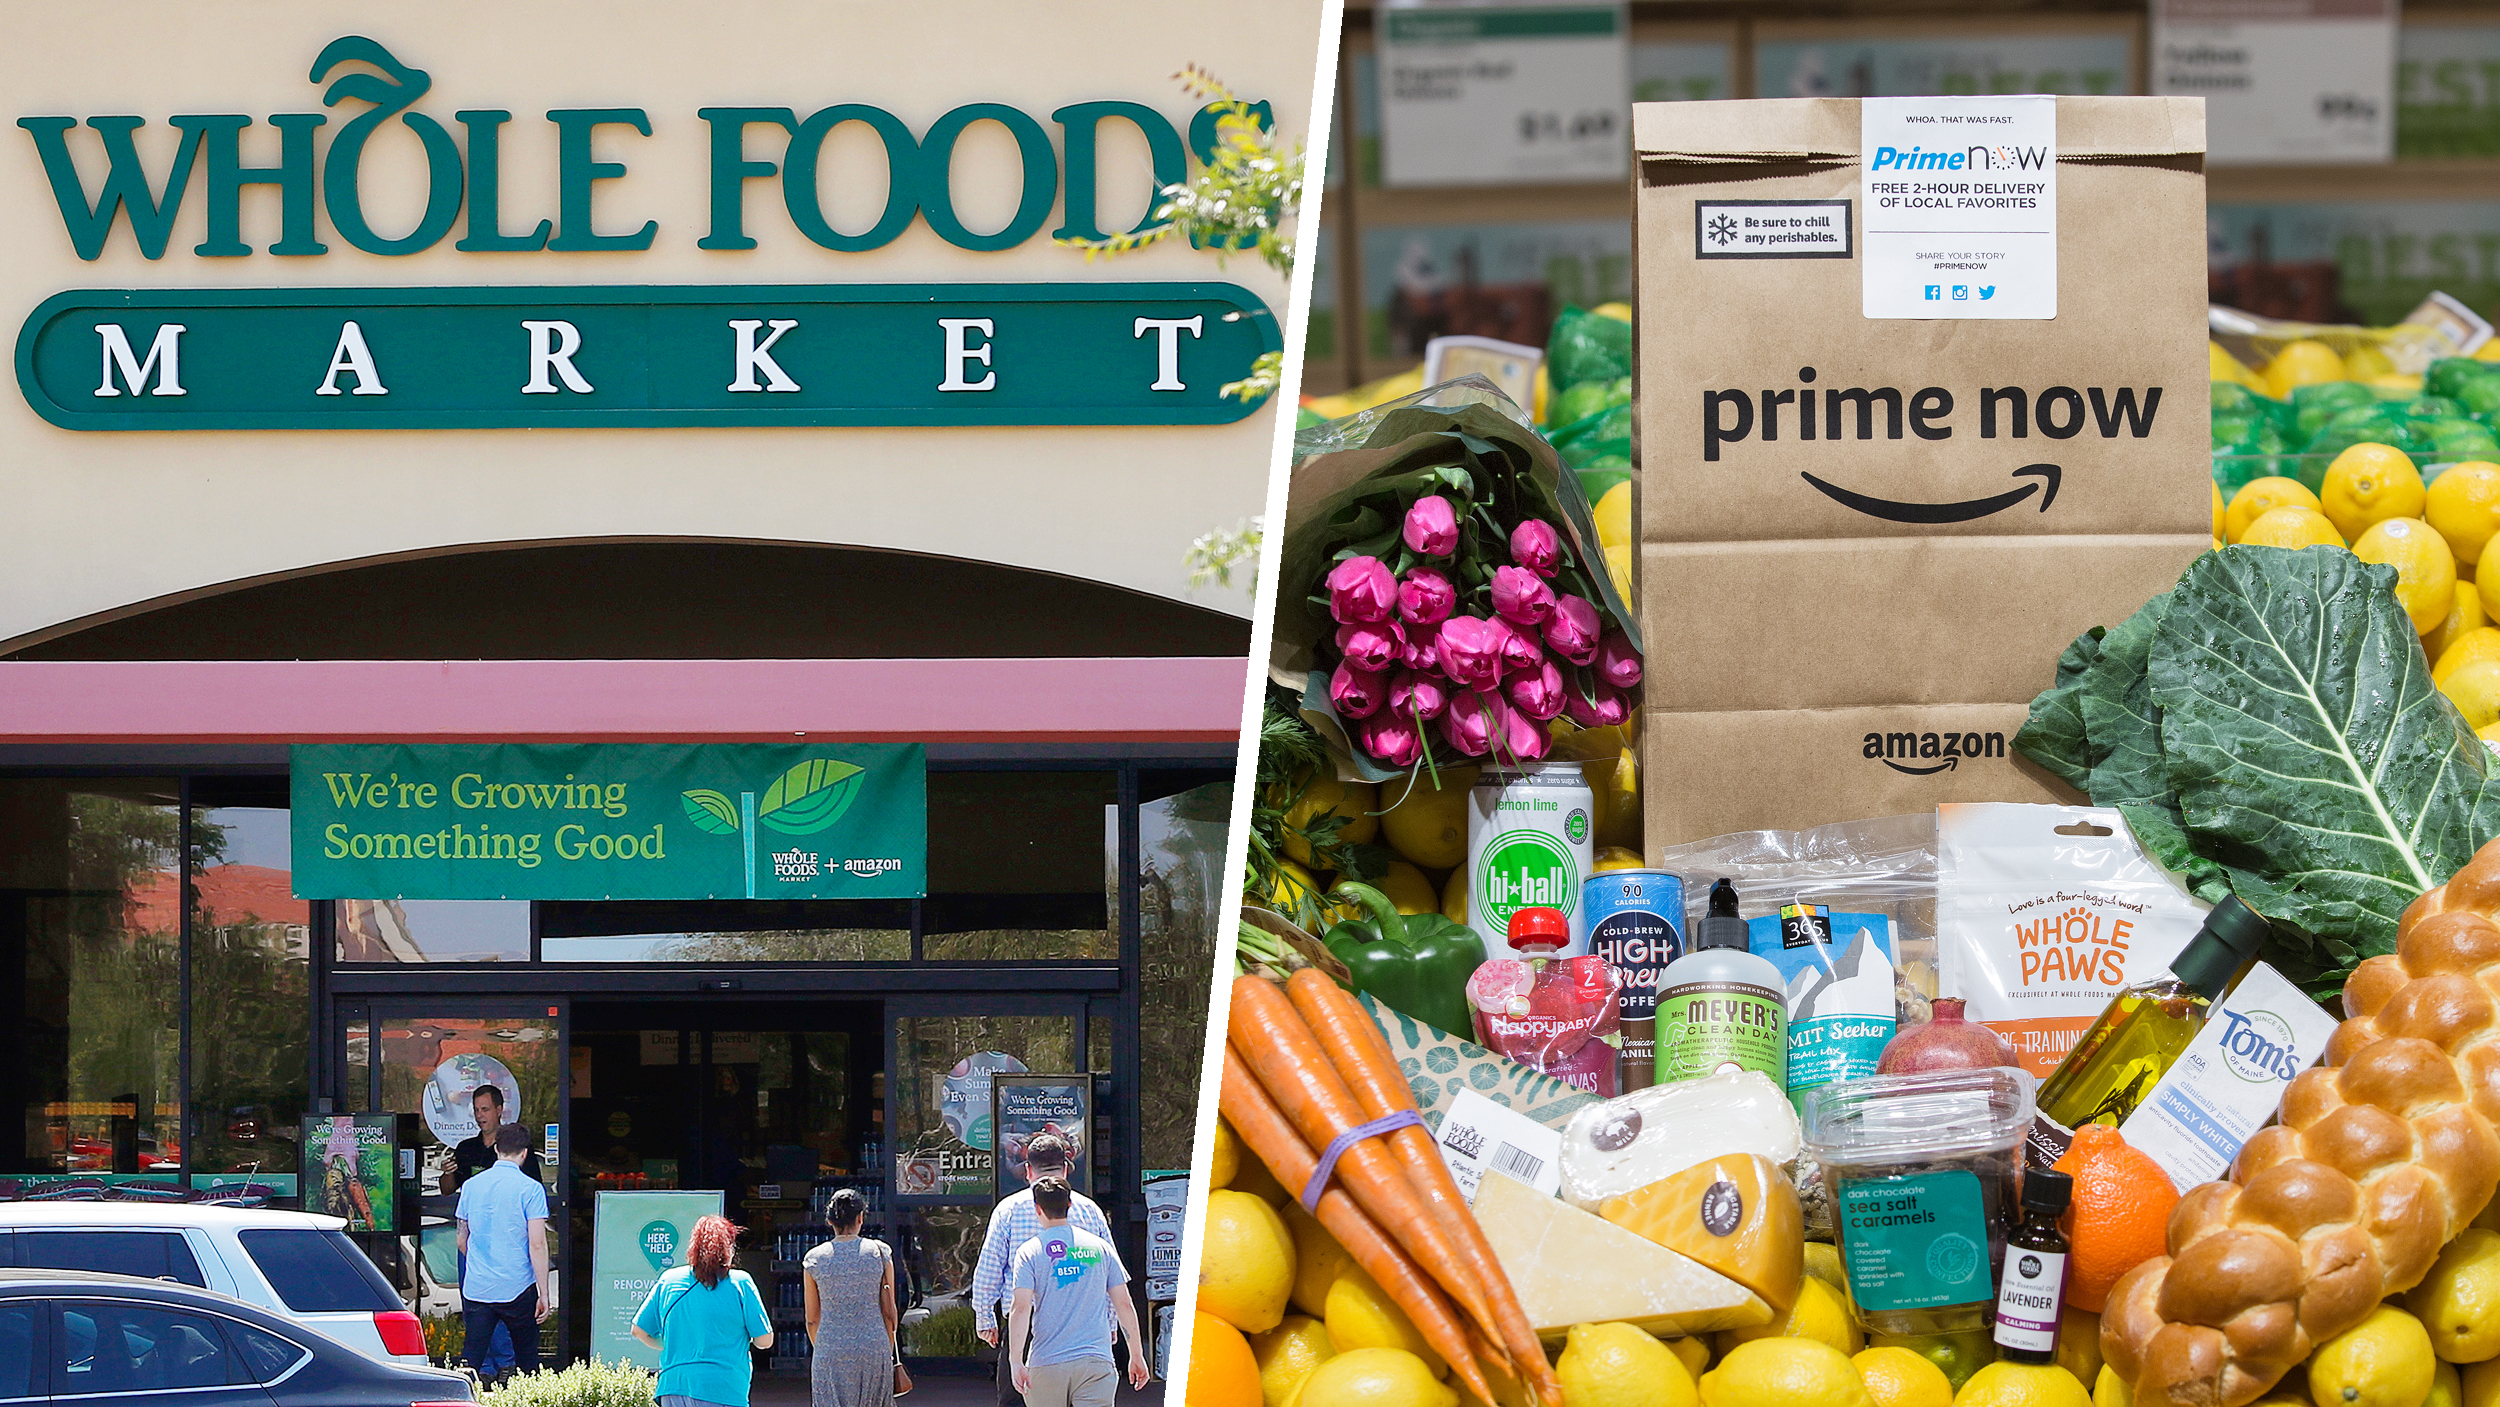 Amazon Grocery Skip The Line At Whole Foods Amazon Launches 30 Minute Grocery Pickup